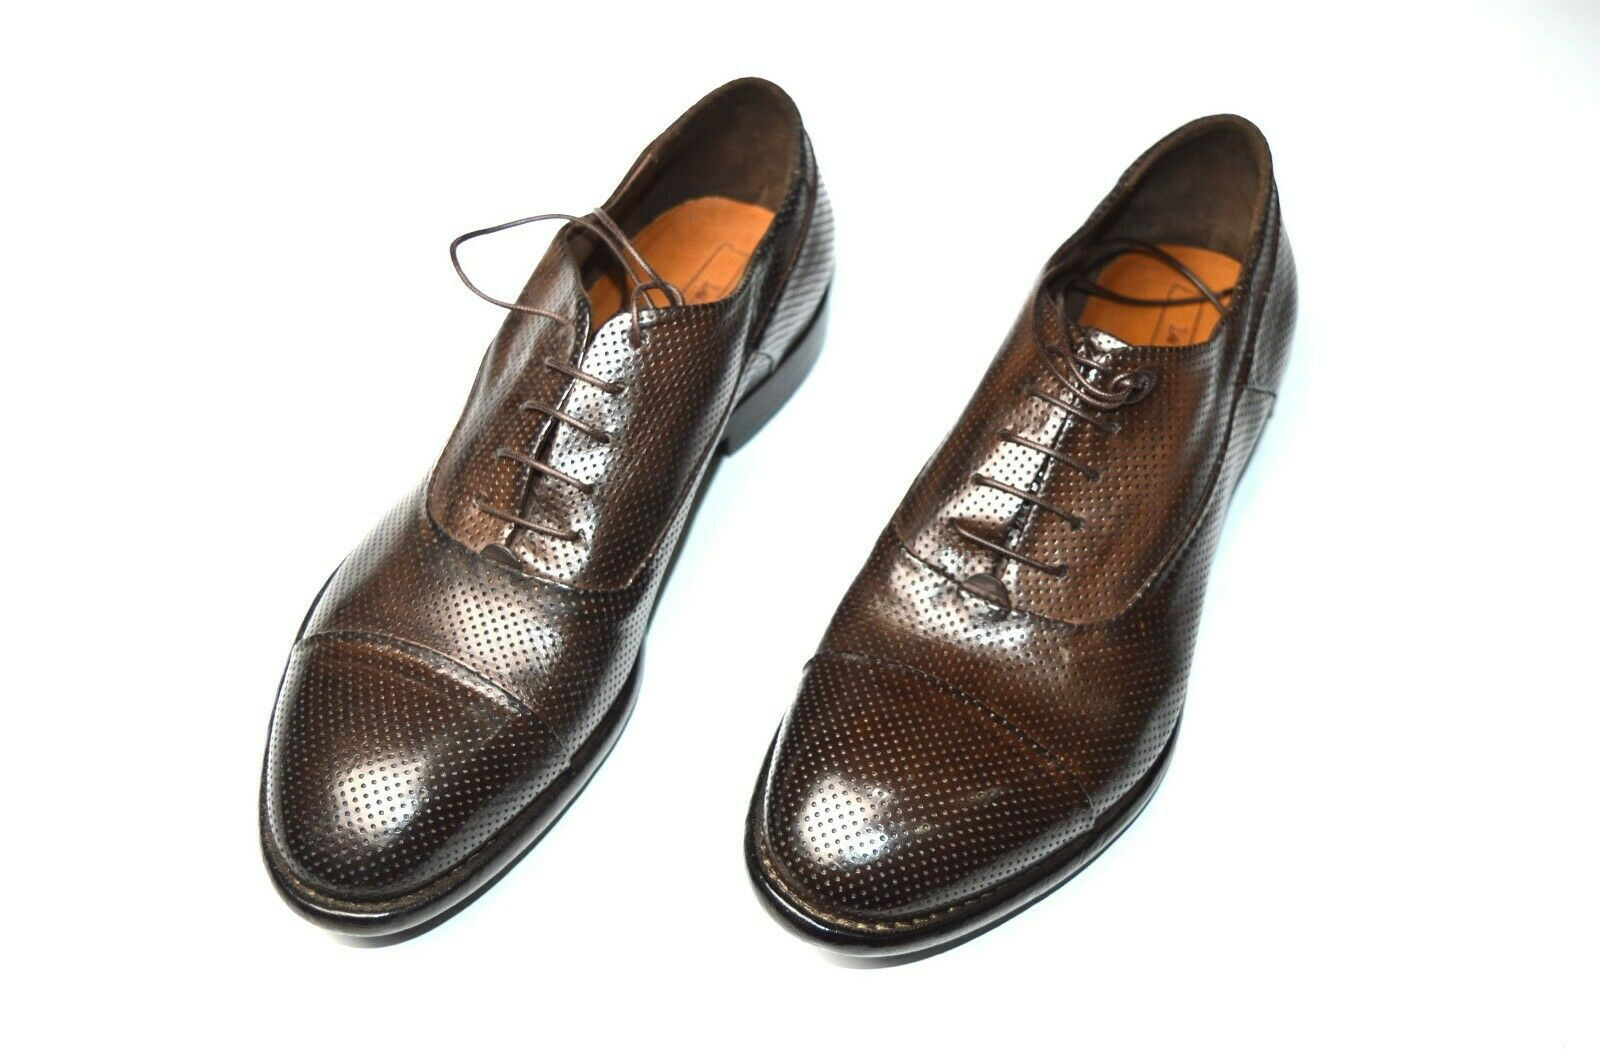 NEW LEMARGO Dress Leather schuhe Größe Eu Eu Eu 43.5 Uk 9.5 Us 10.5 (CodLM2) 5b17e5